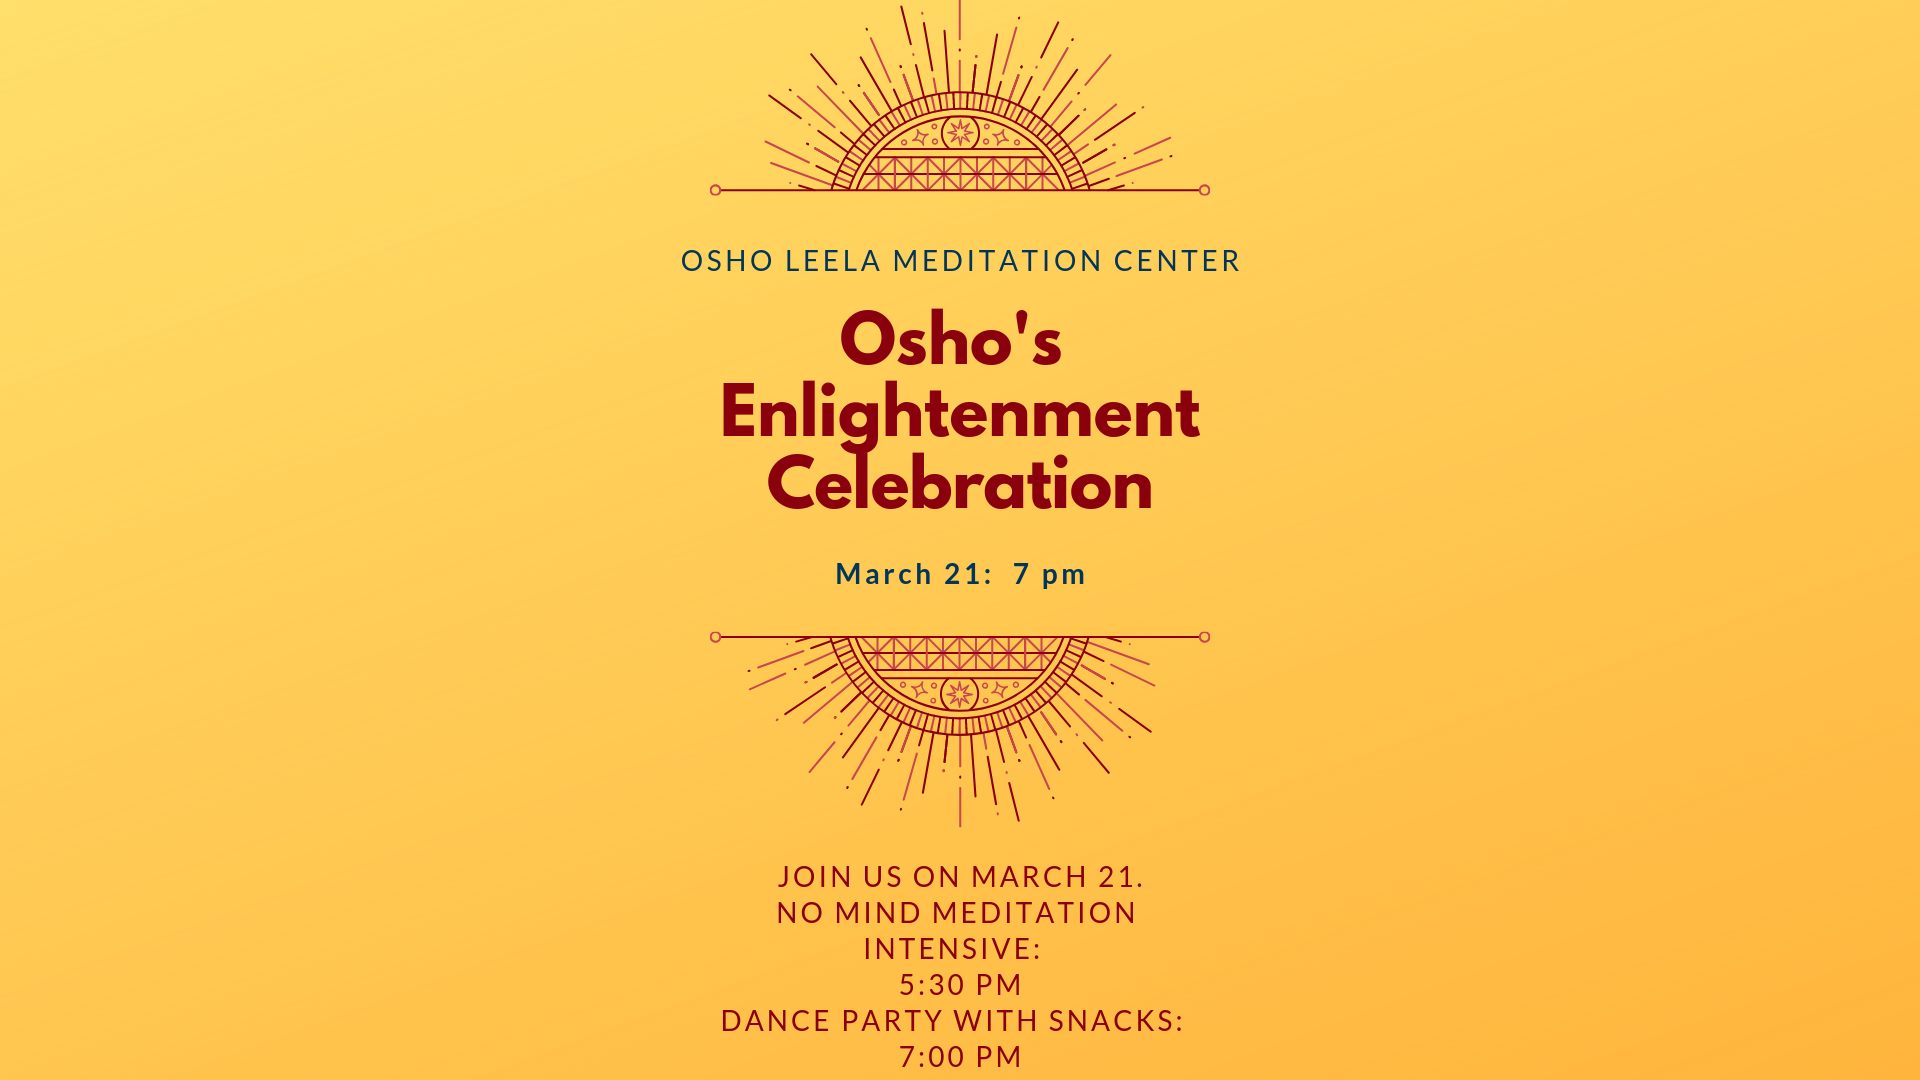 Enlightenment Day Celebration